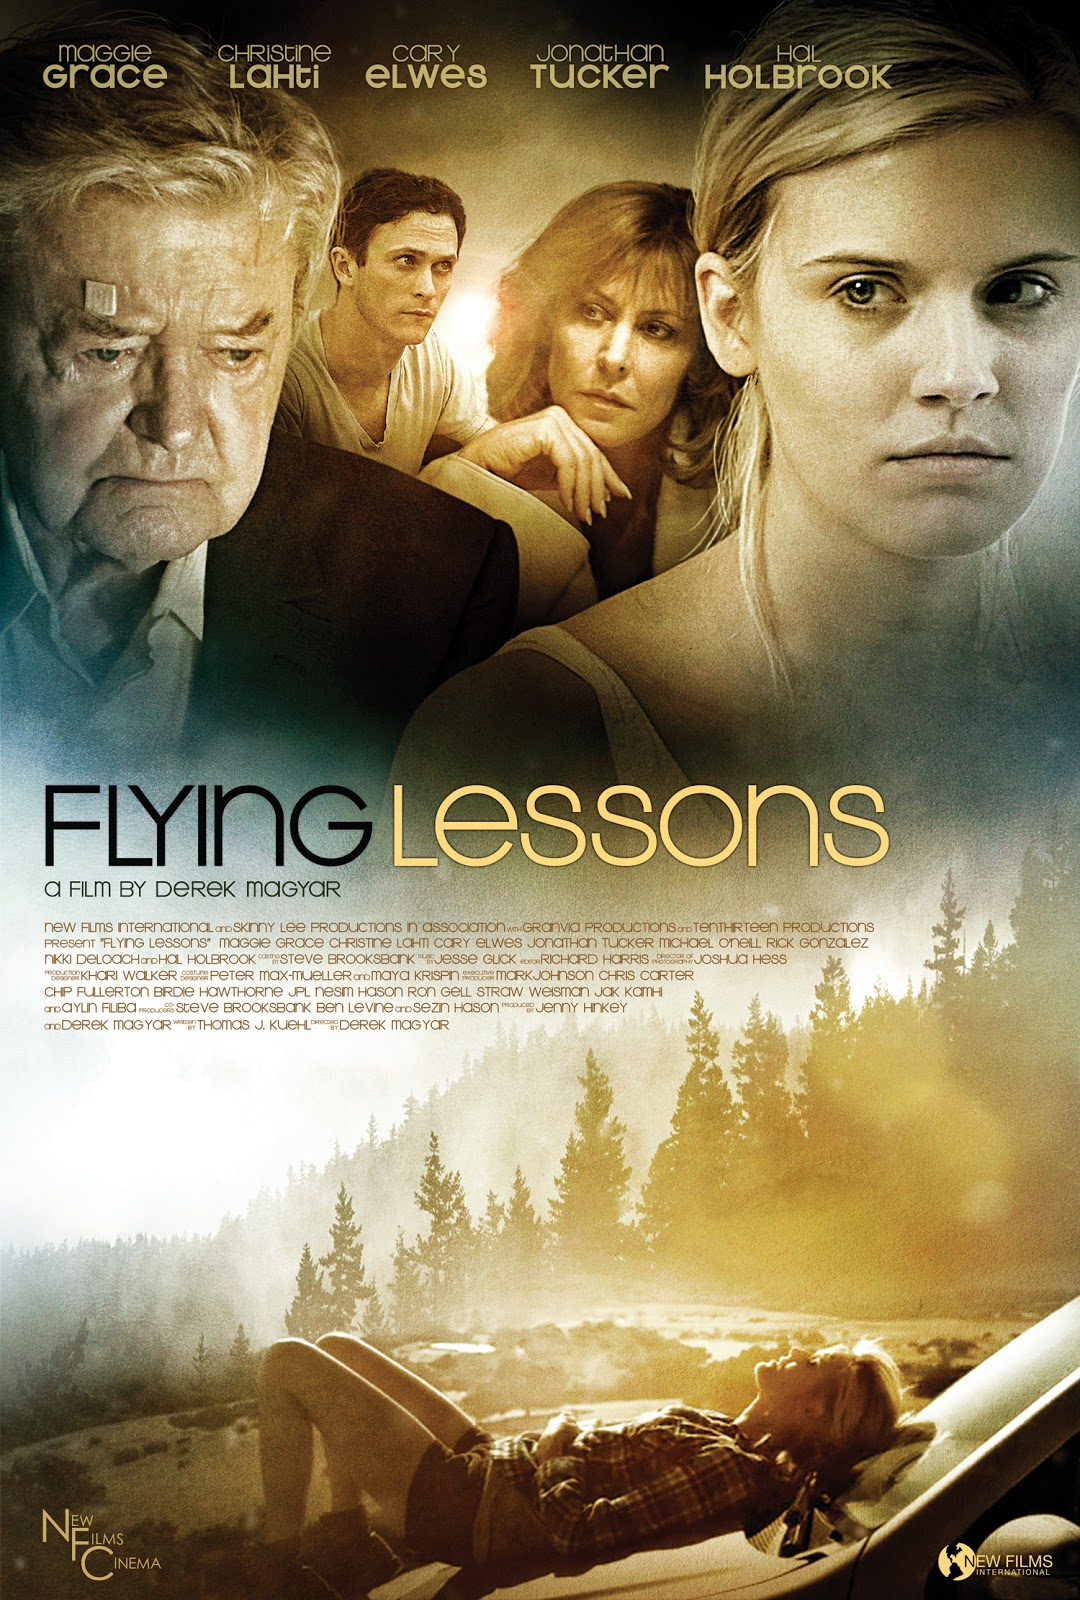 Flying Lessons - Poster (2012)